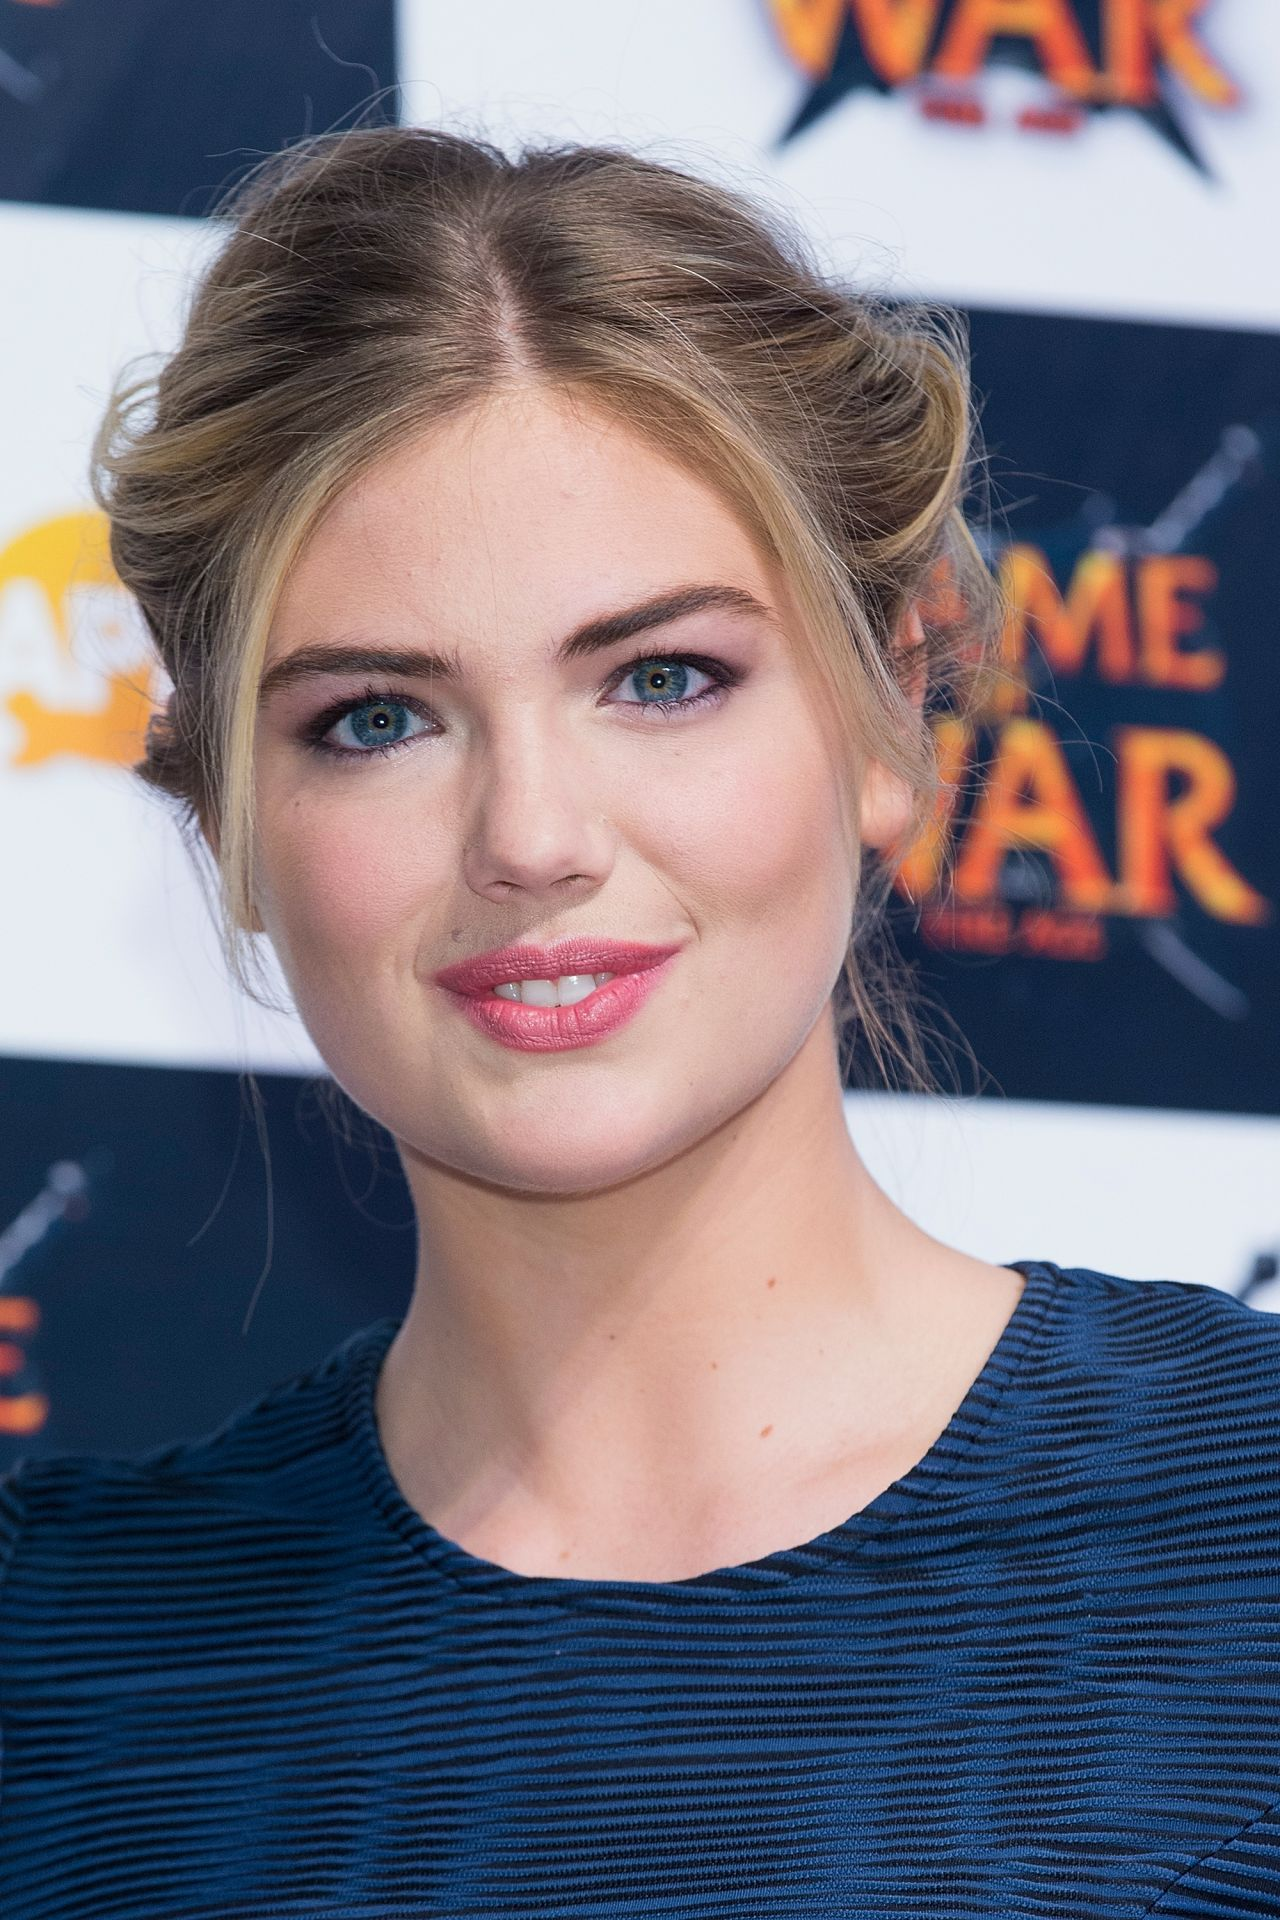 Kate upton game of war fire age promotional event in